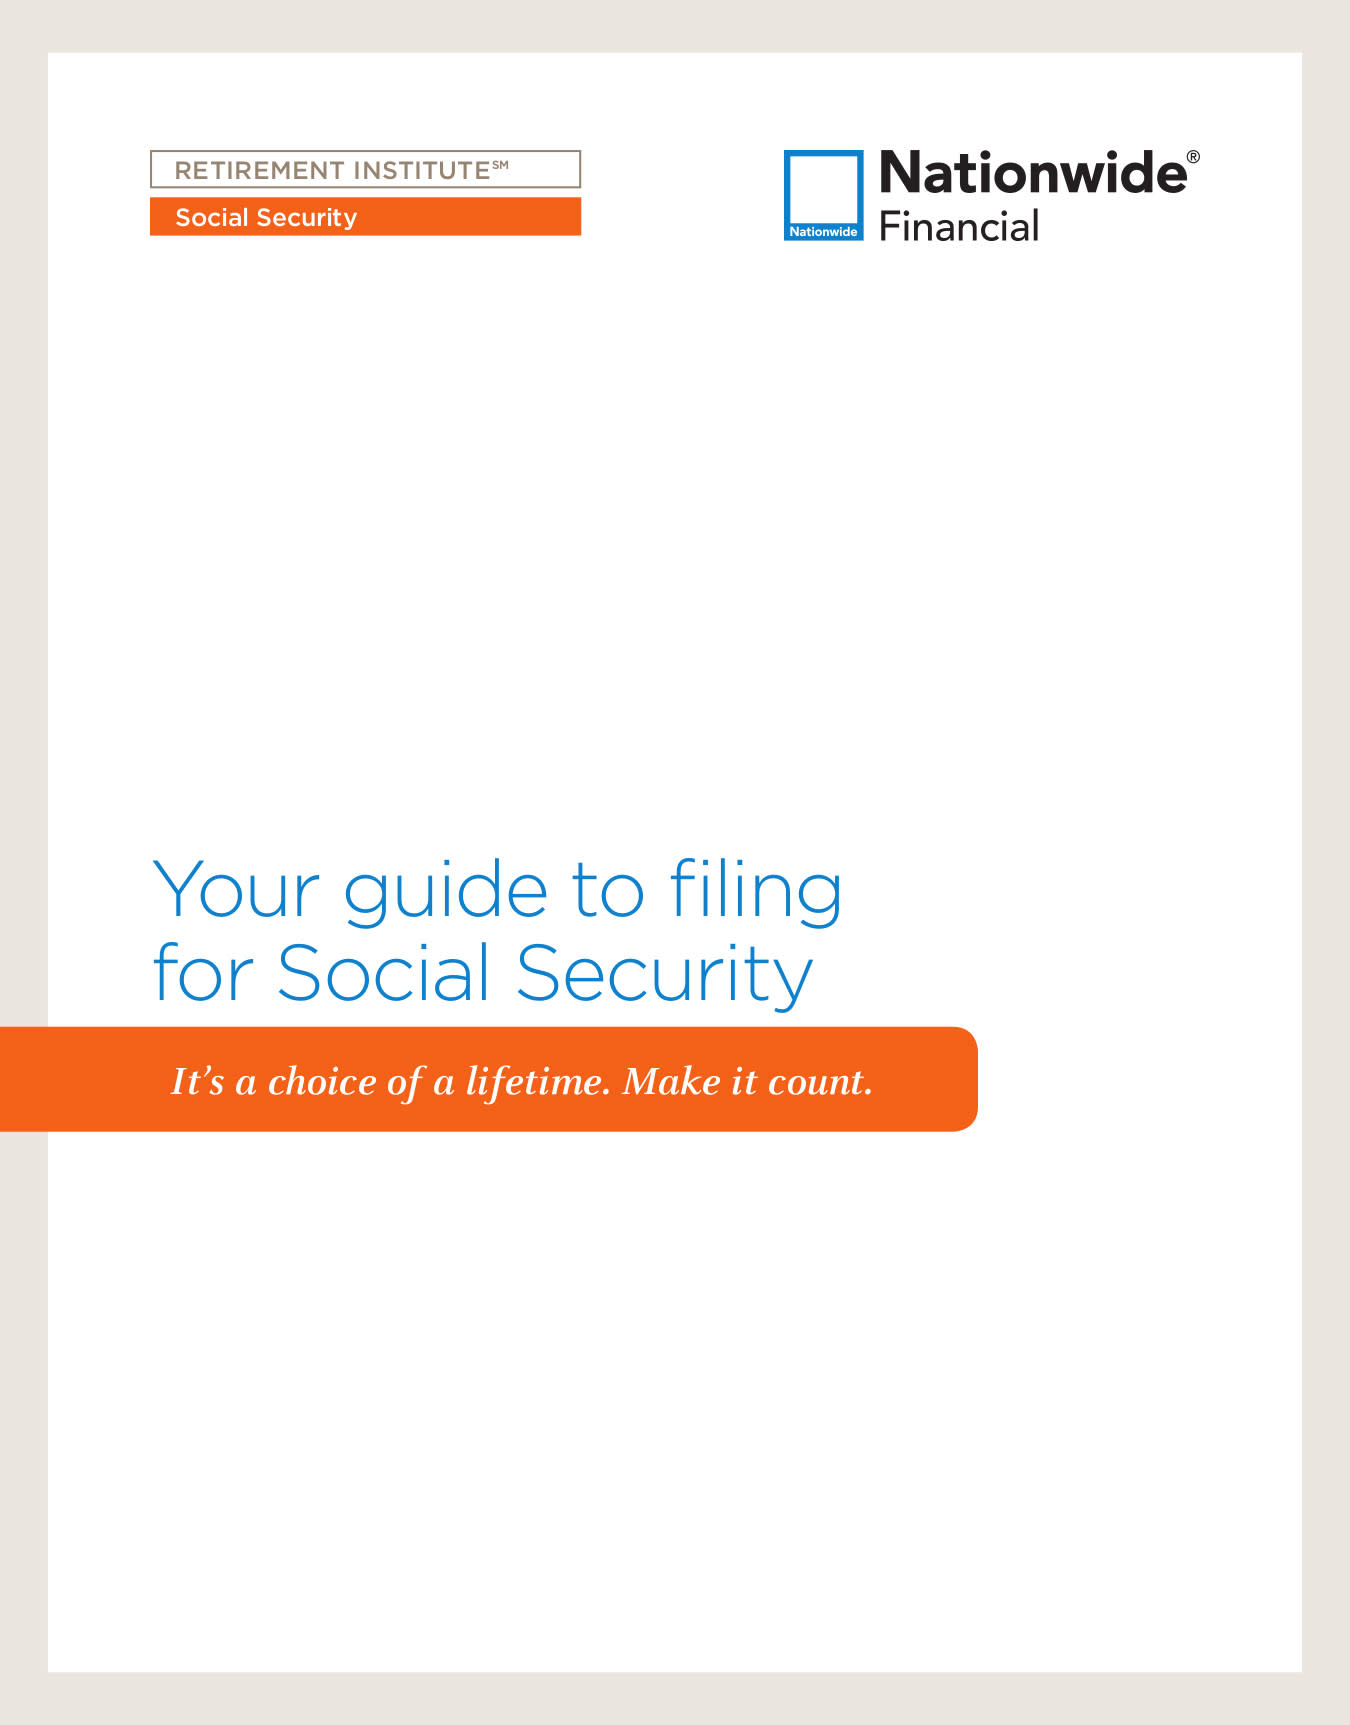 Your guide to filing for social security